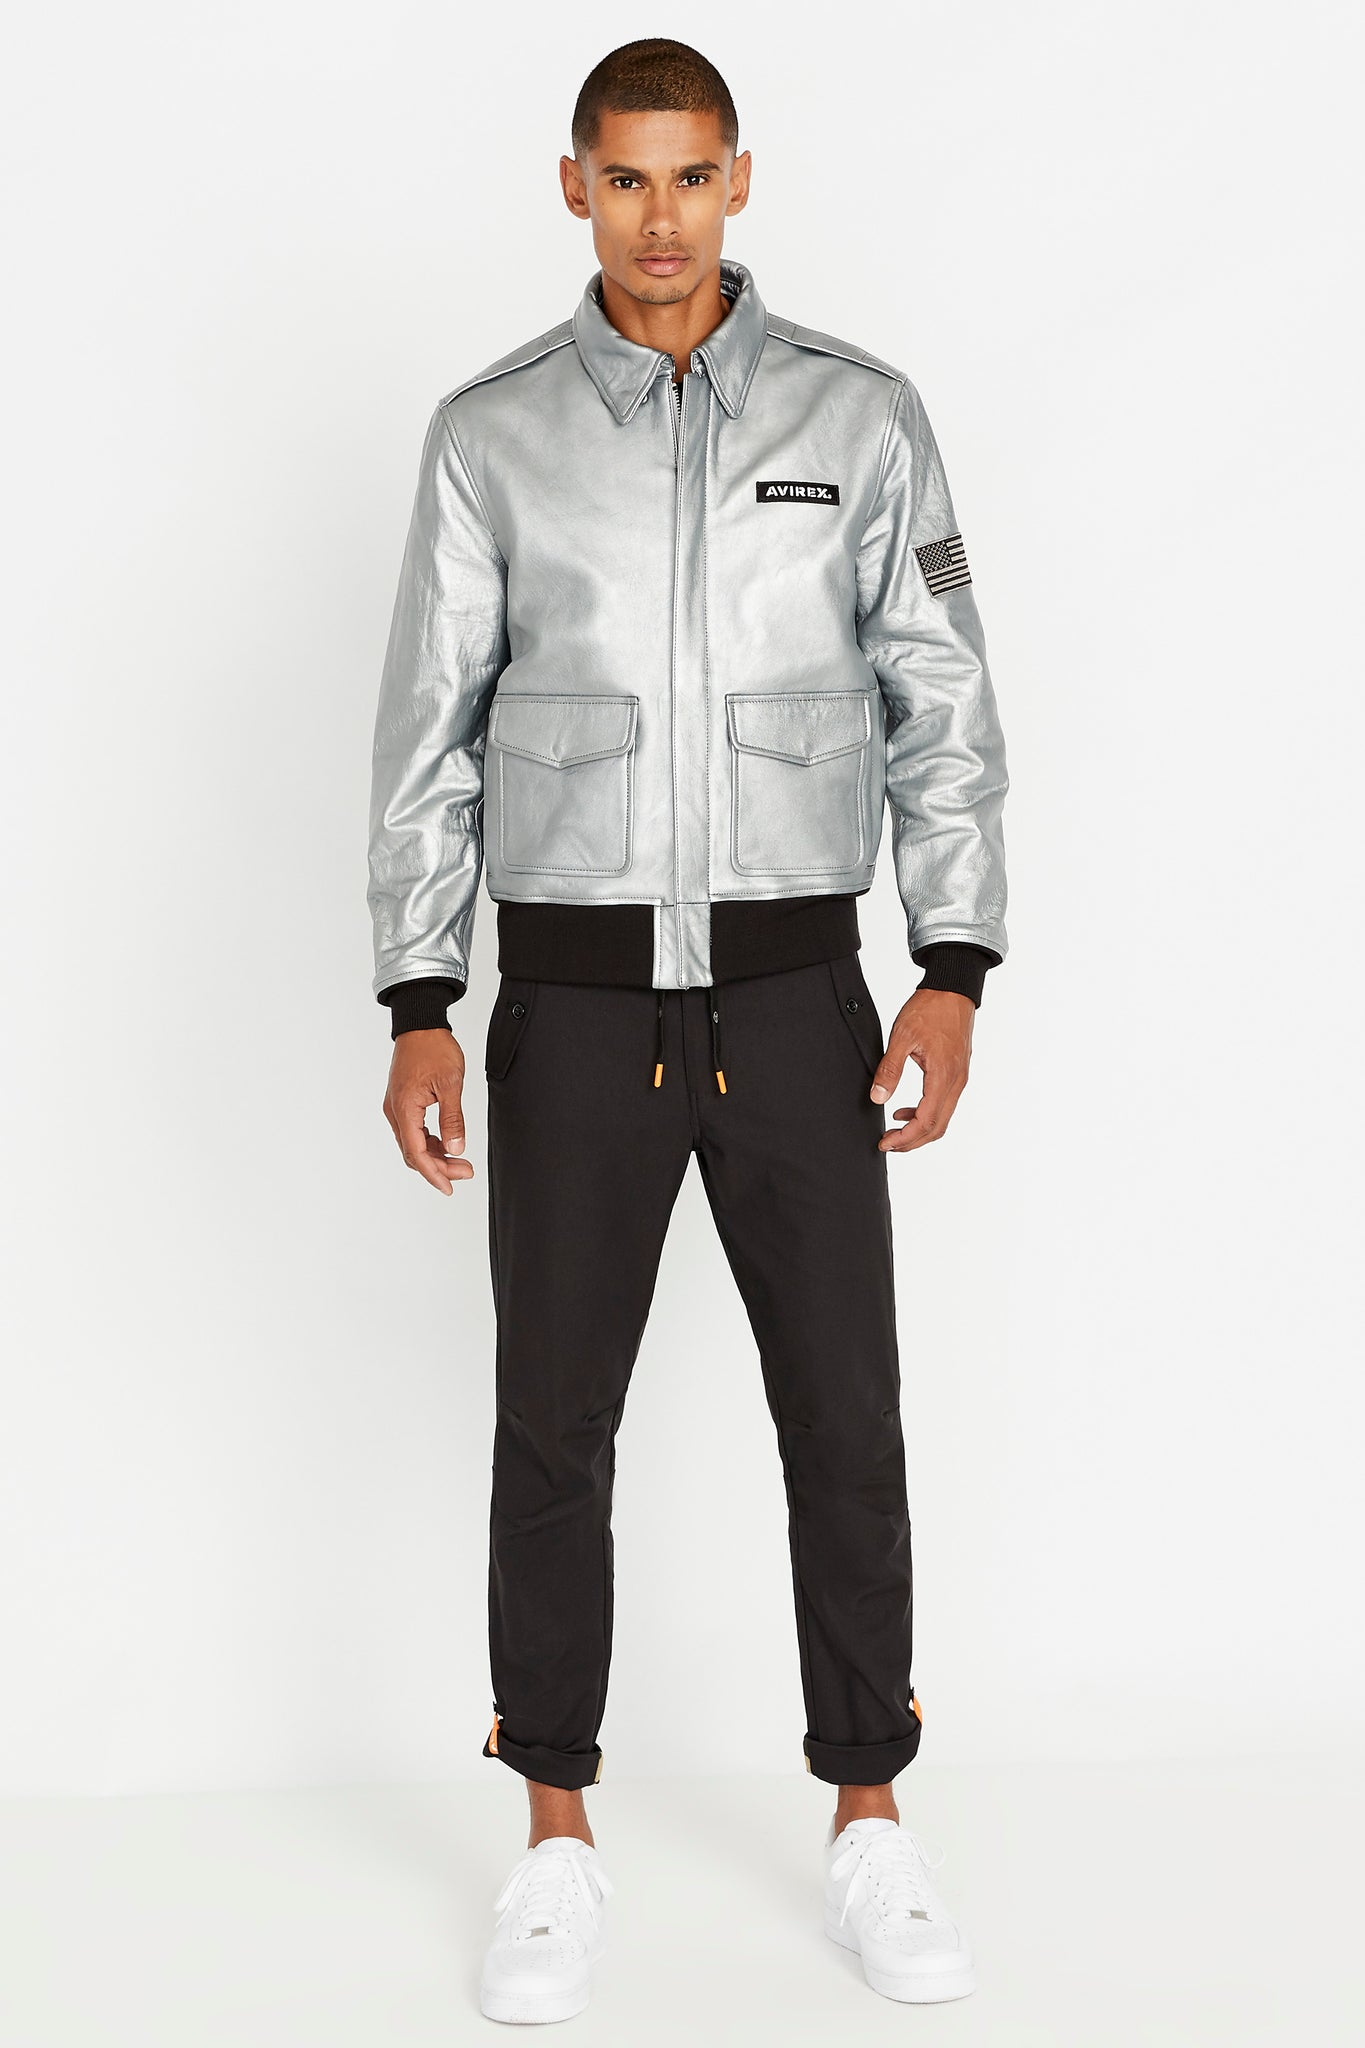 Full front view of men wearing a fully zipped silver leather bomber jacket with snap down collar and two flap snap prockets, Avirex logo patch on the chest and one patch on the left sleeve and black pants